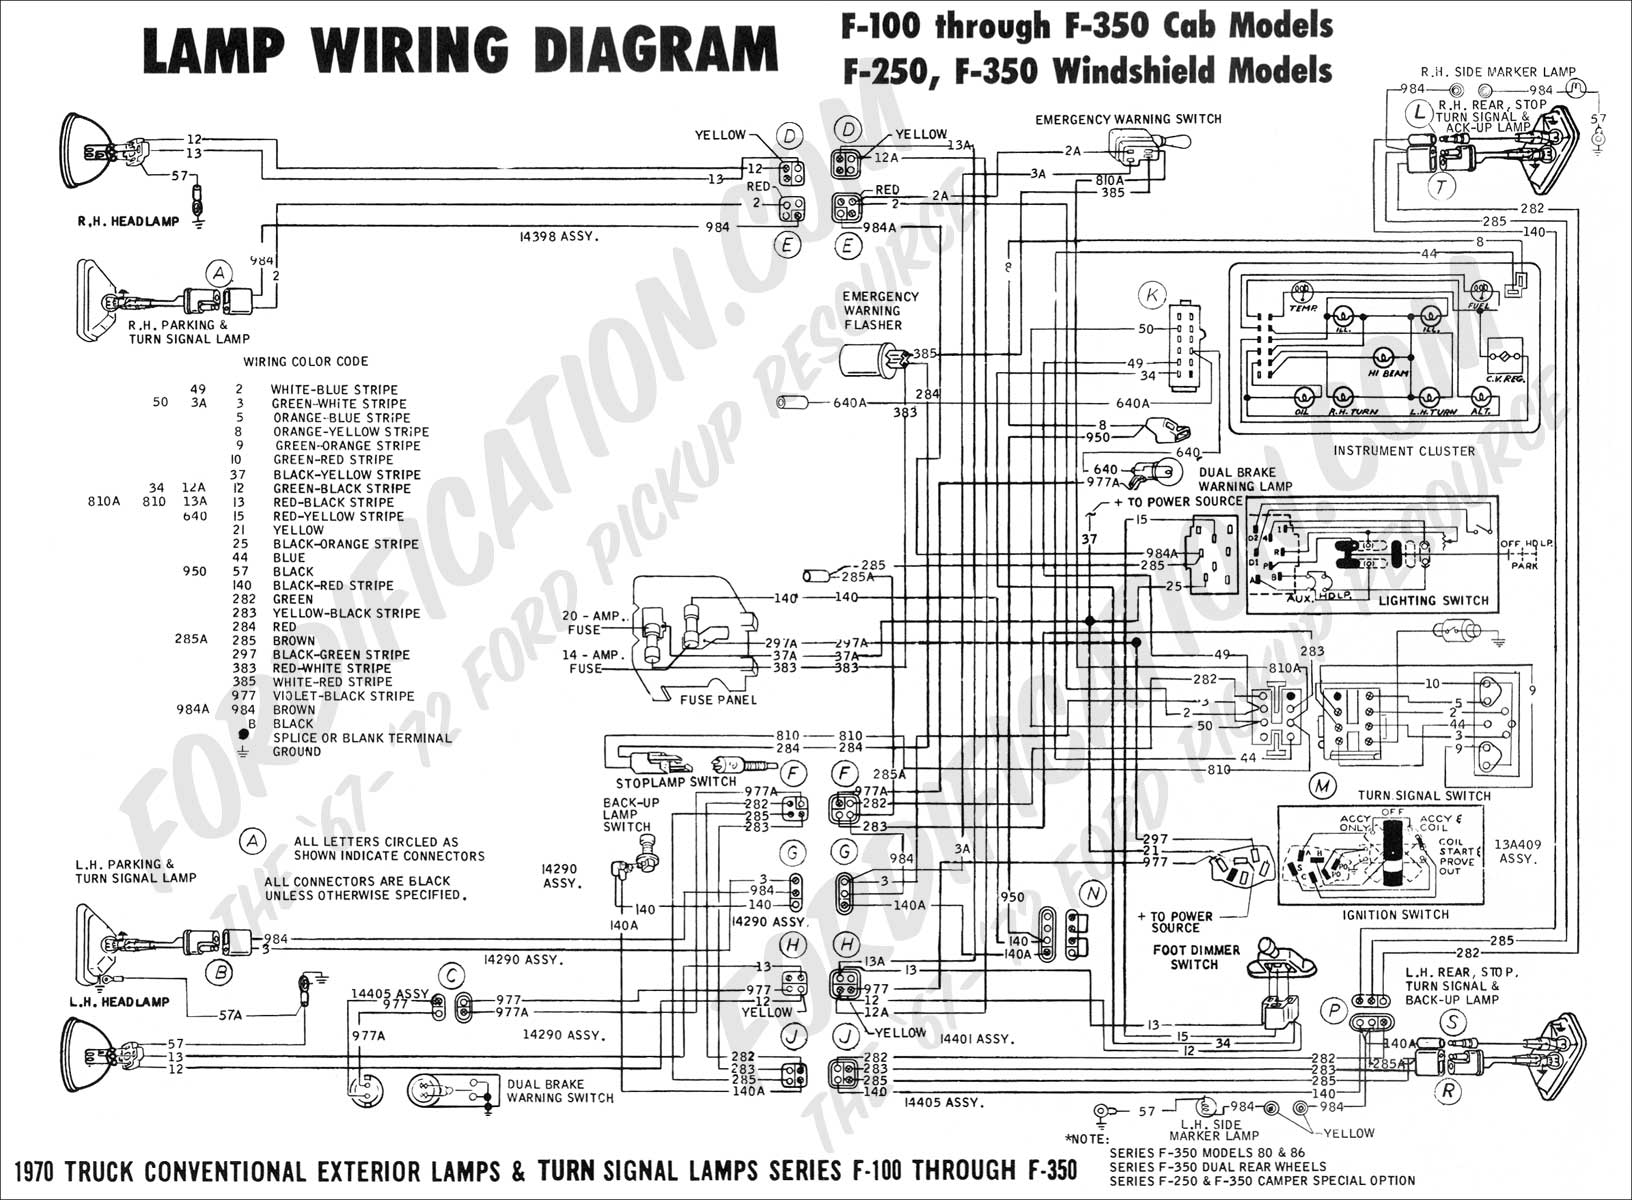 wiring diagram_70ext lights01 2008 ford f250 wiring diagram 2008 ford f250 remote start wiring wiring harness for 2006 ford f150 at suagrazia.org